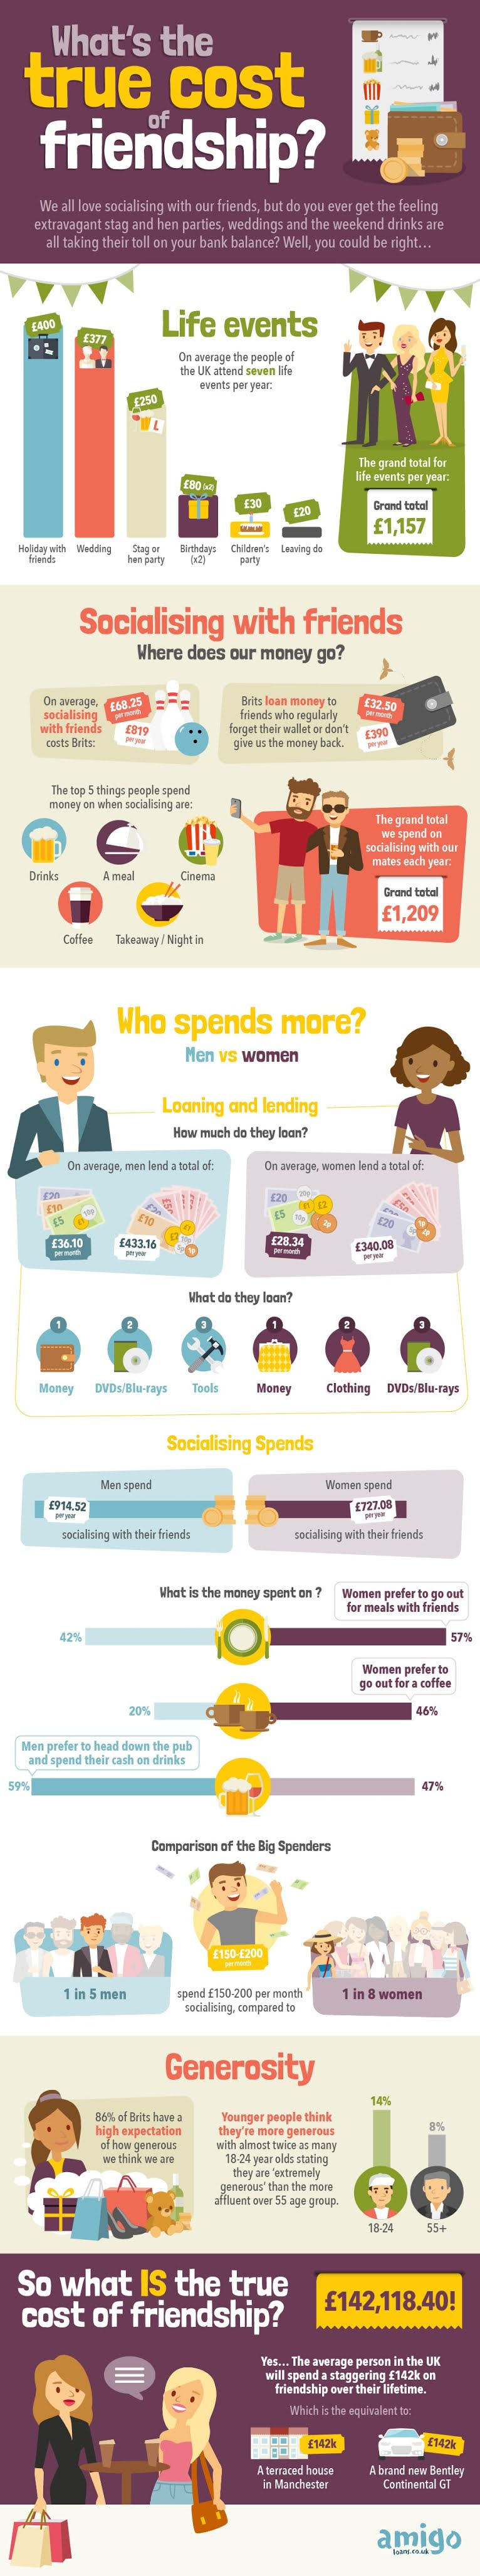 What Is The True Cost Of Friendship? #infographic